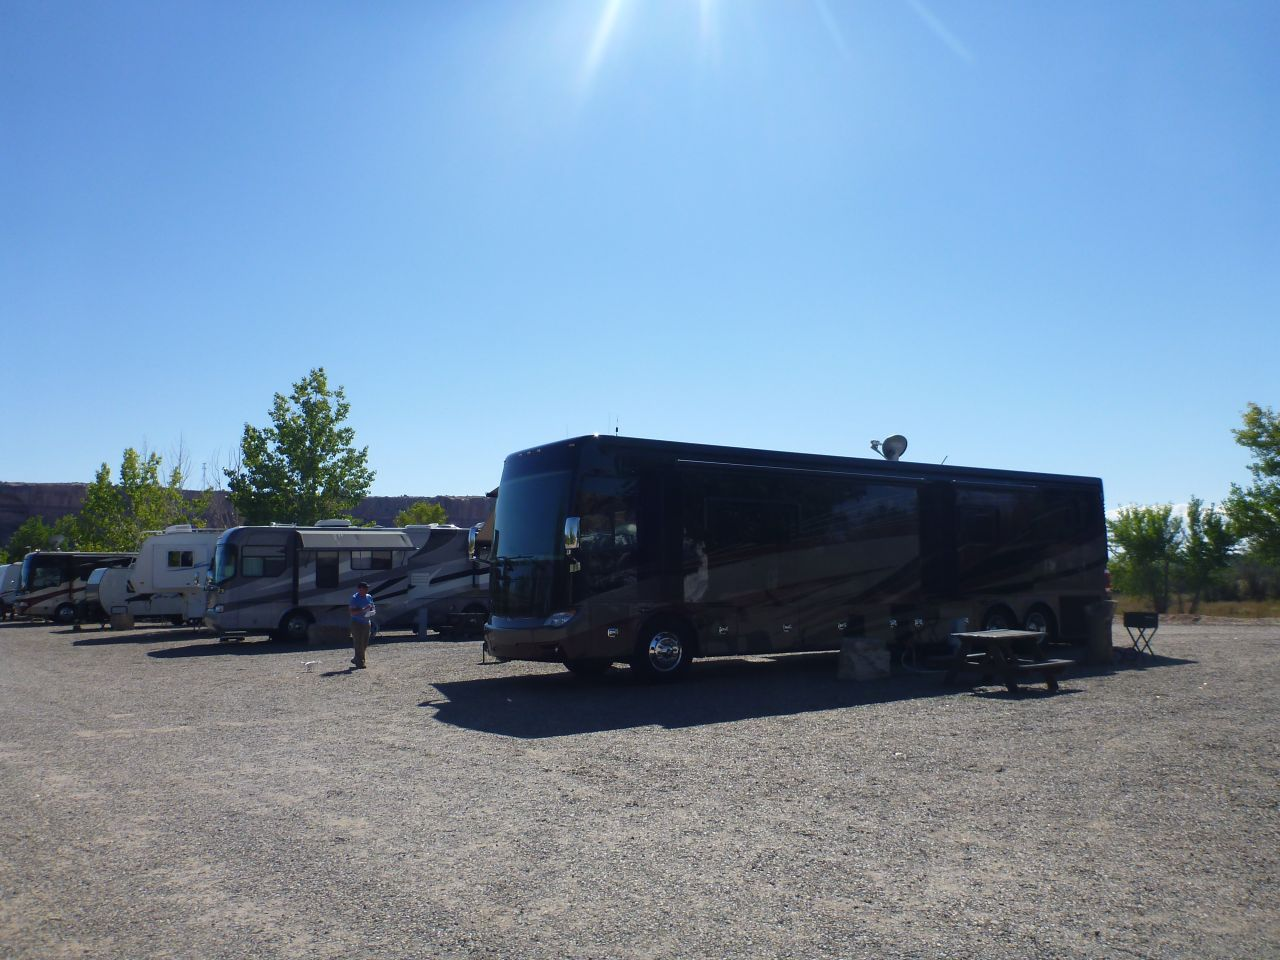 Our Site At The Cadillac Ranch RV Park In Bluff, UtahOur Site At The Cadillac Ranch RV Park In Bluff, Utah